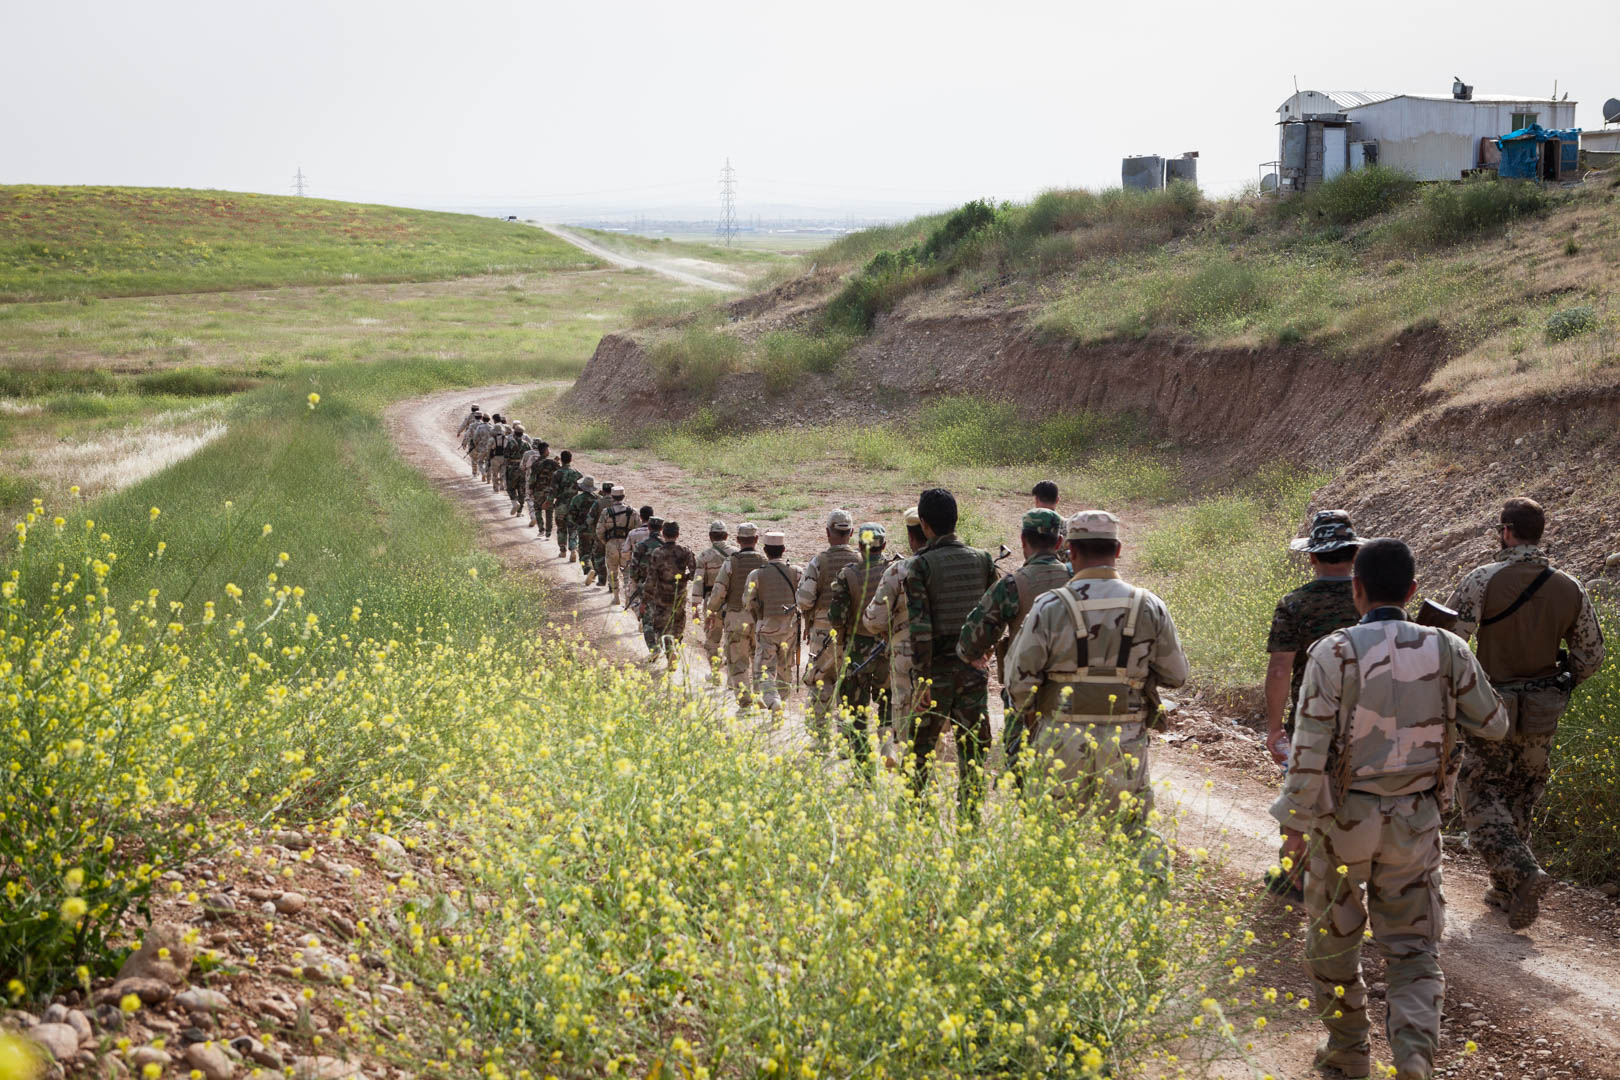 After their training at the firing range, a battalion of the Peshmerga is walking back to their compound. They receive training five days a week, for four weeks.